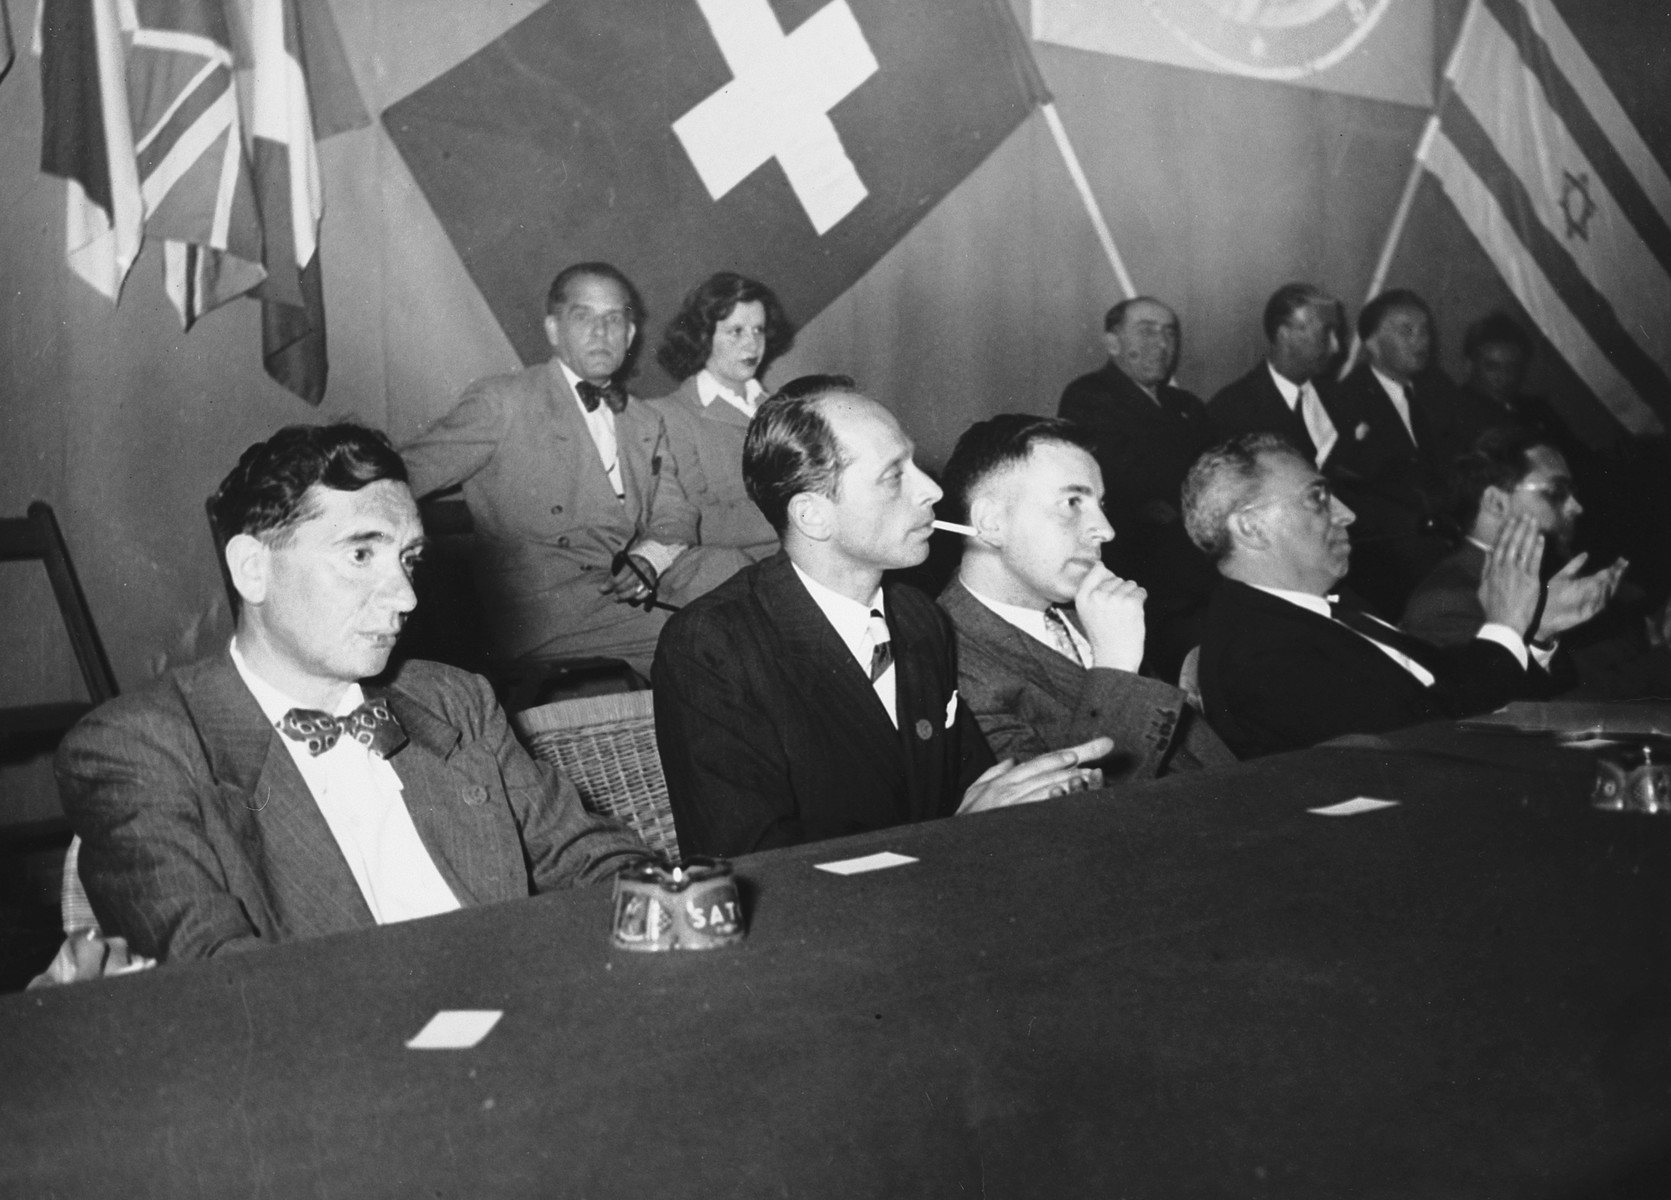 The Presidium at the opening session of the assembly of the World Jewish Congress in Montreux, Switzerland.   Among those pictured is Gerhart Riegner (in the first row the second from the left).